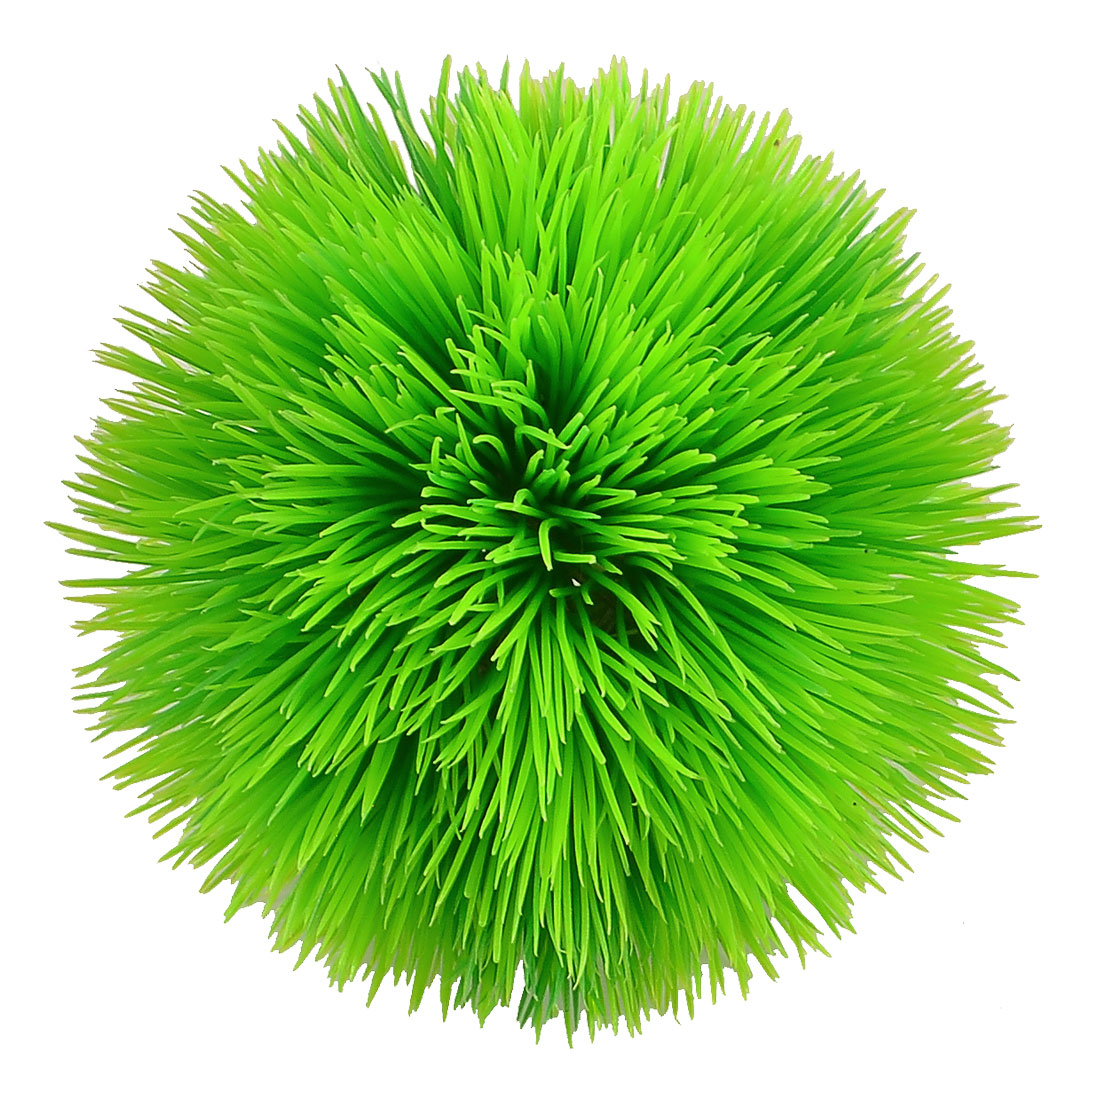 "Aquarium Fish Tank Green Leaves 4.1"" High Simulated Plastic Plant Grass"